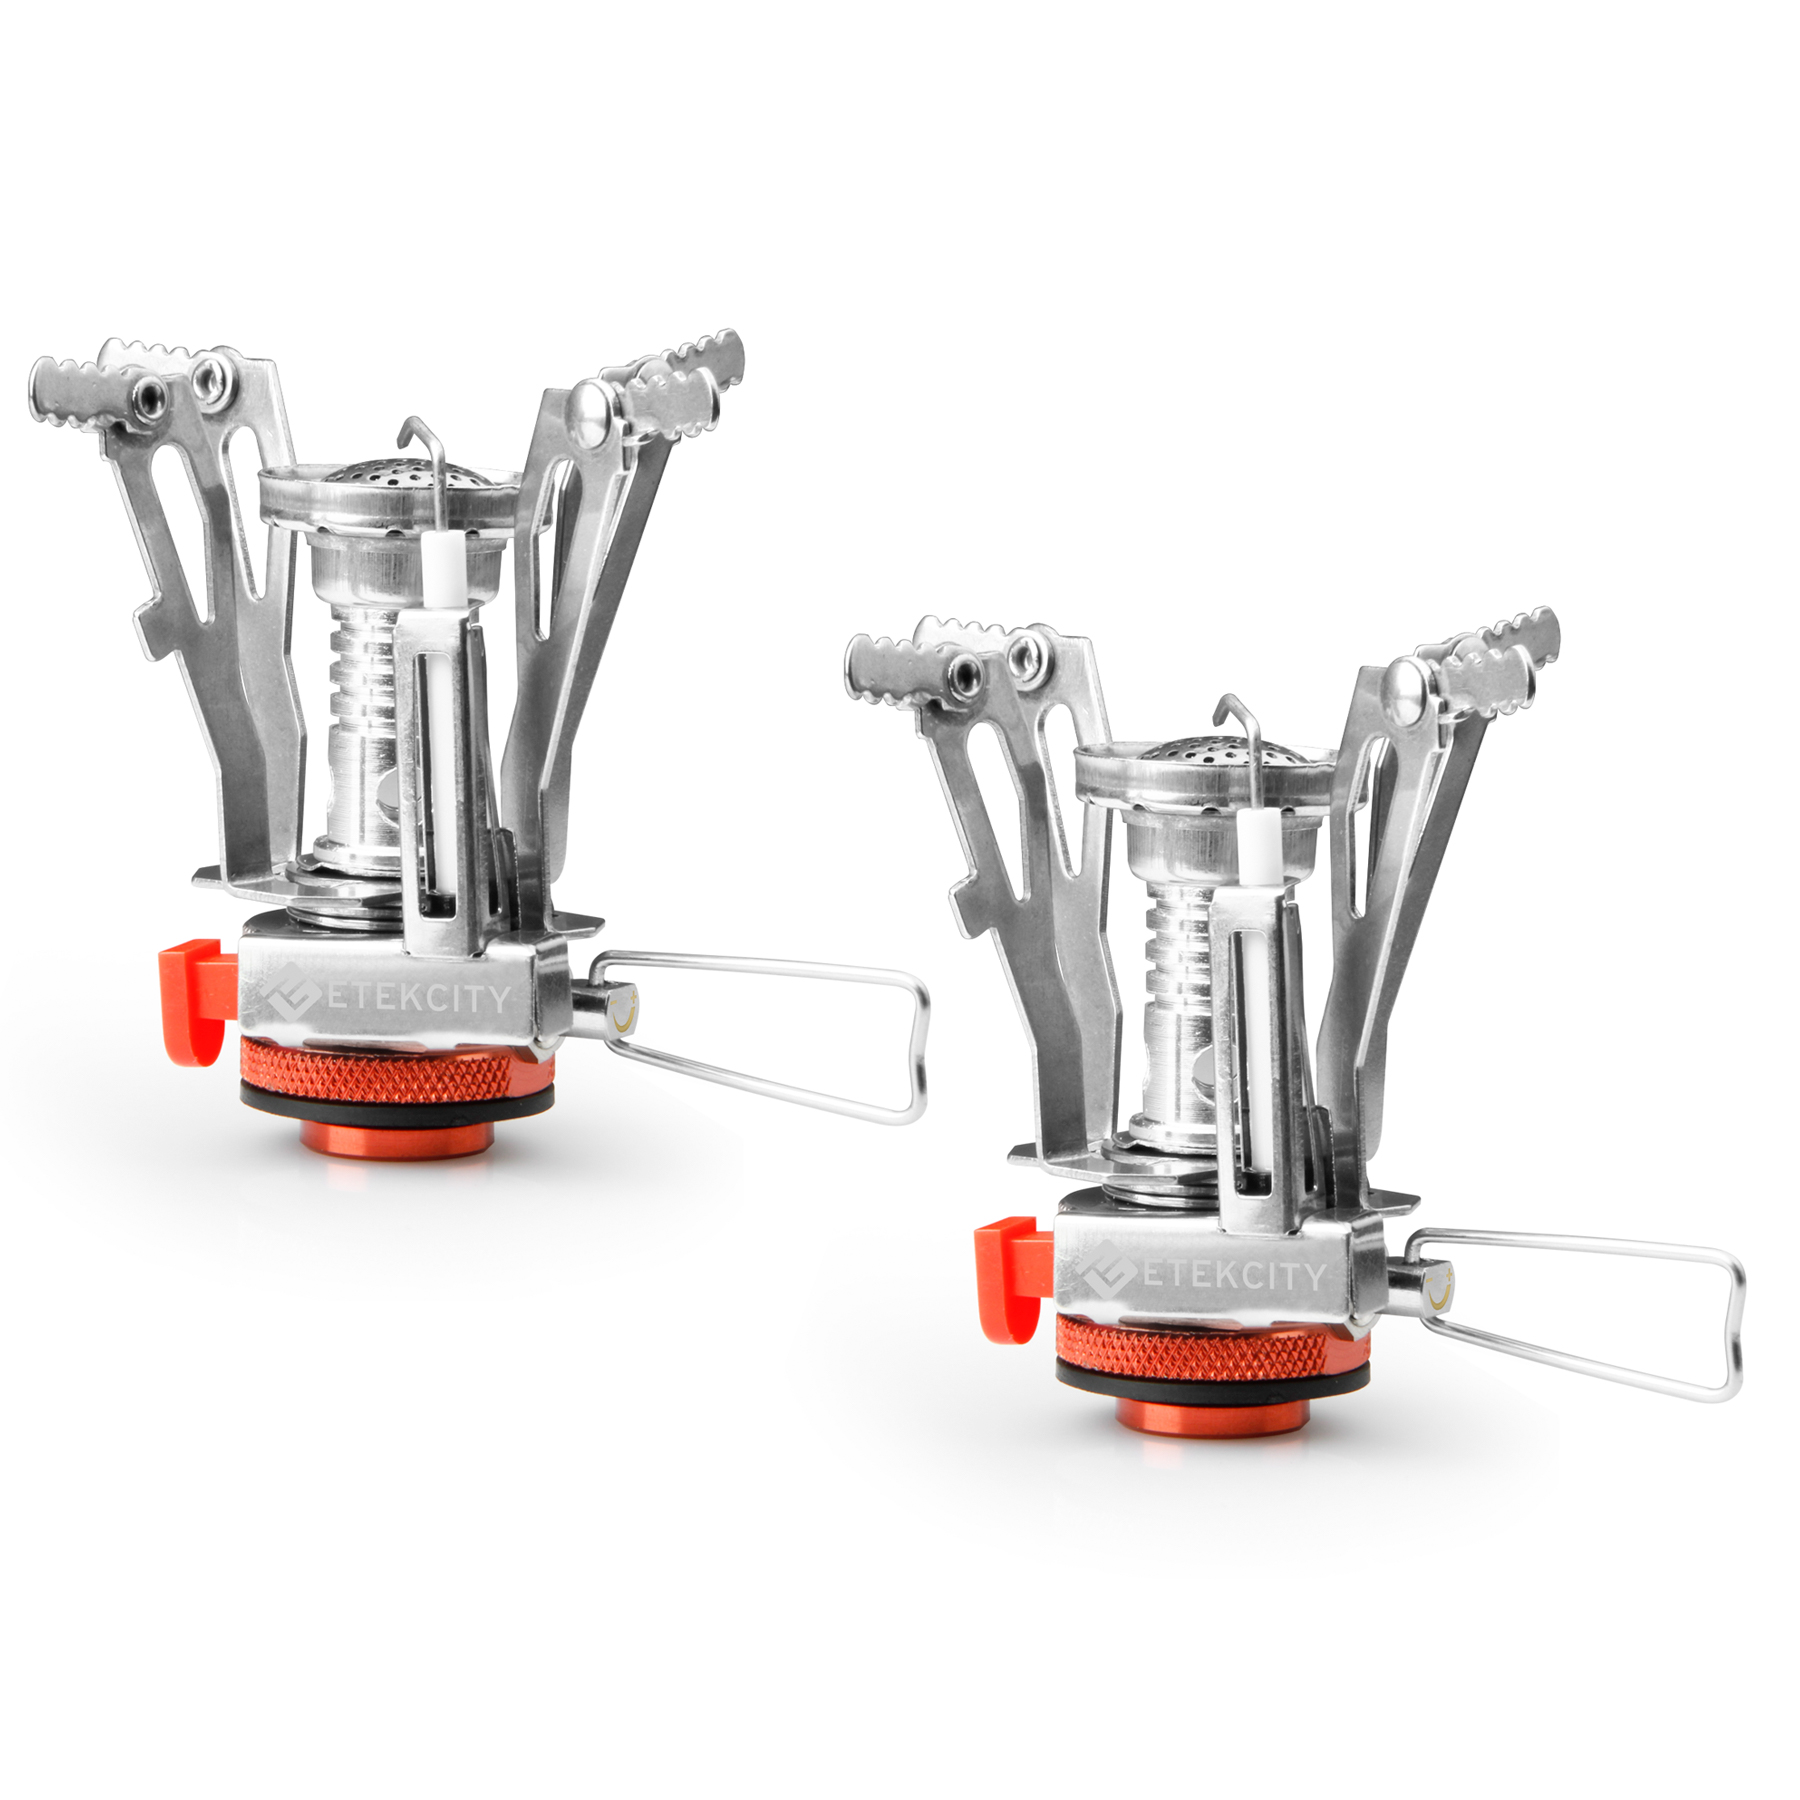 Etekcity 5oz Camp Stove Burner Propane Butane for Grill Outdoor 2-PACK